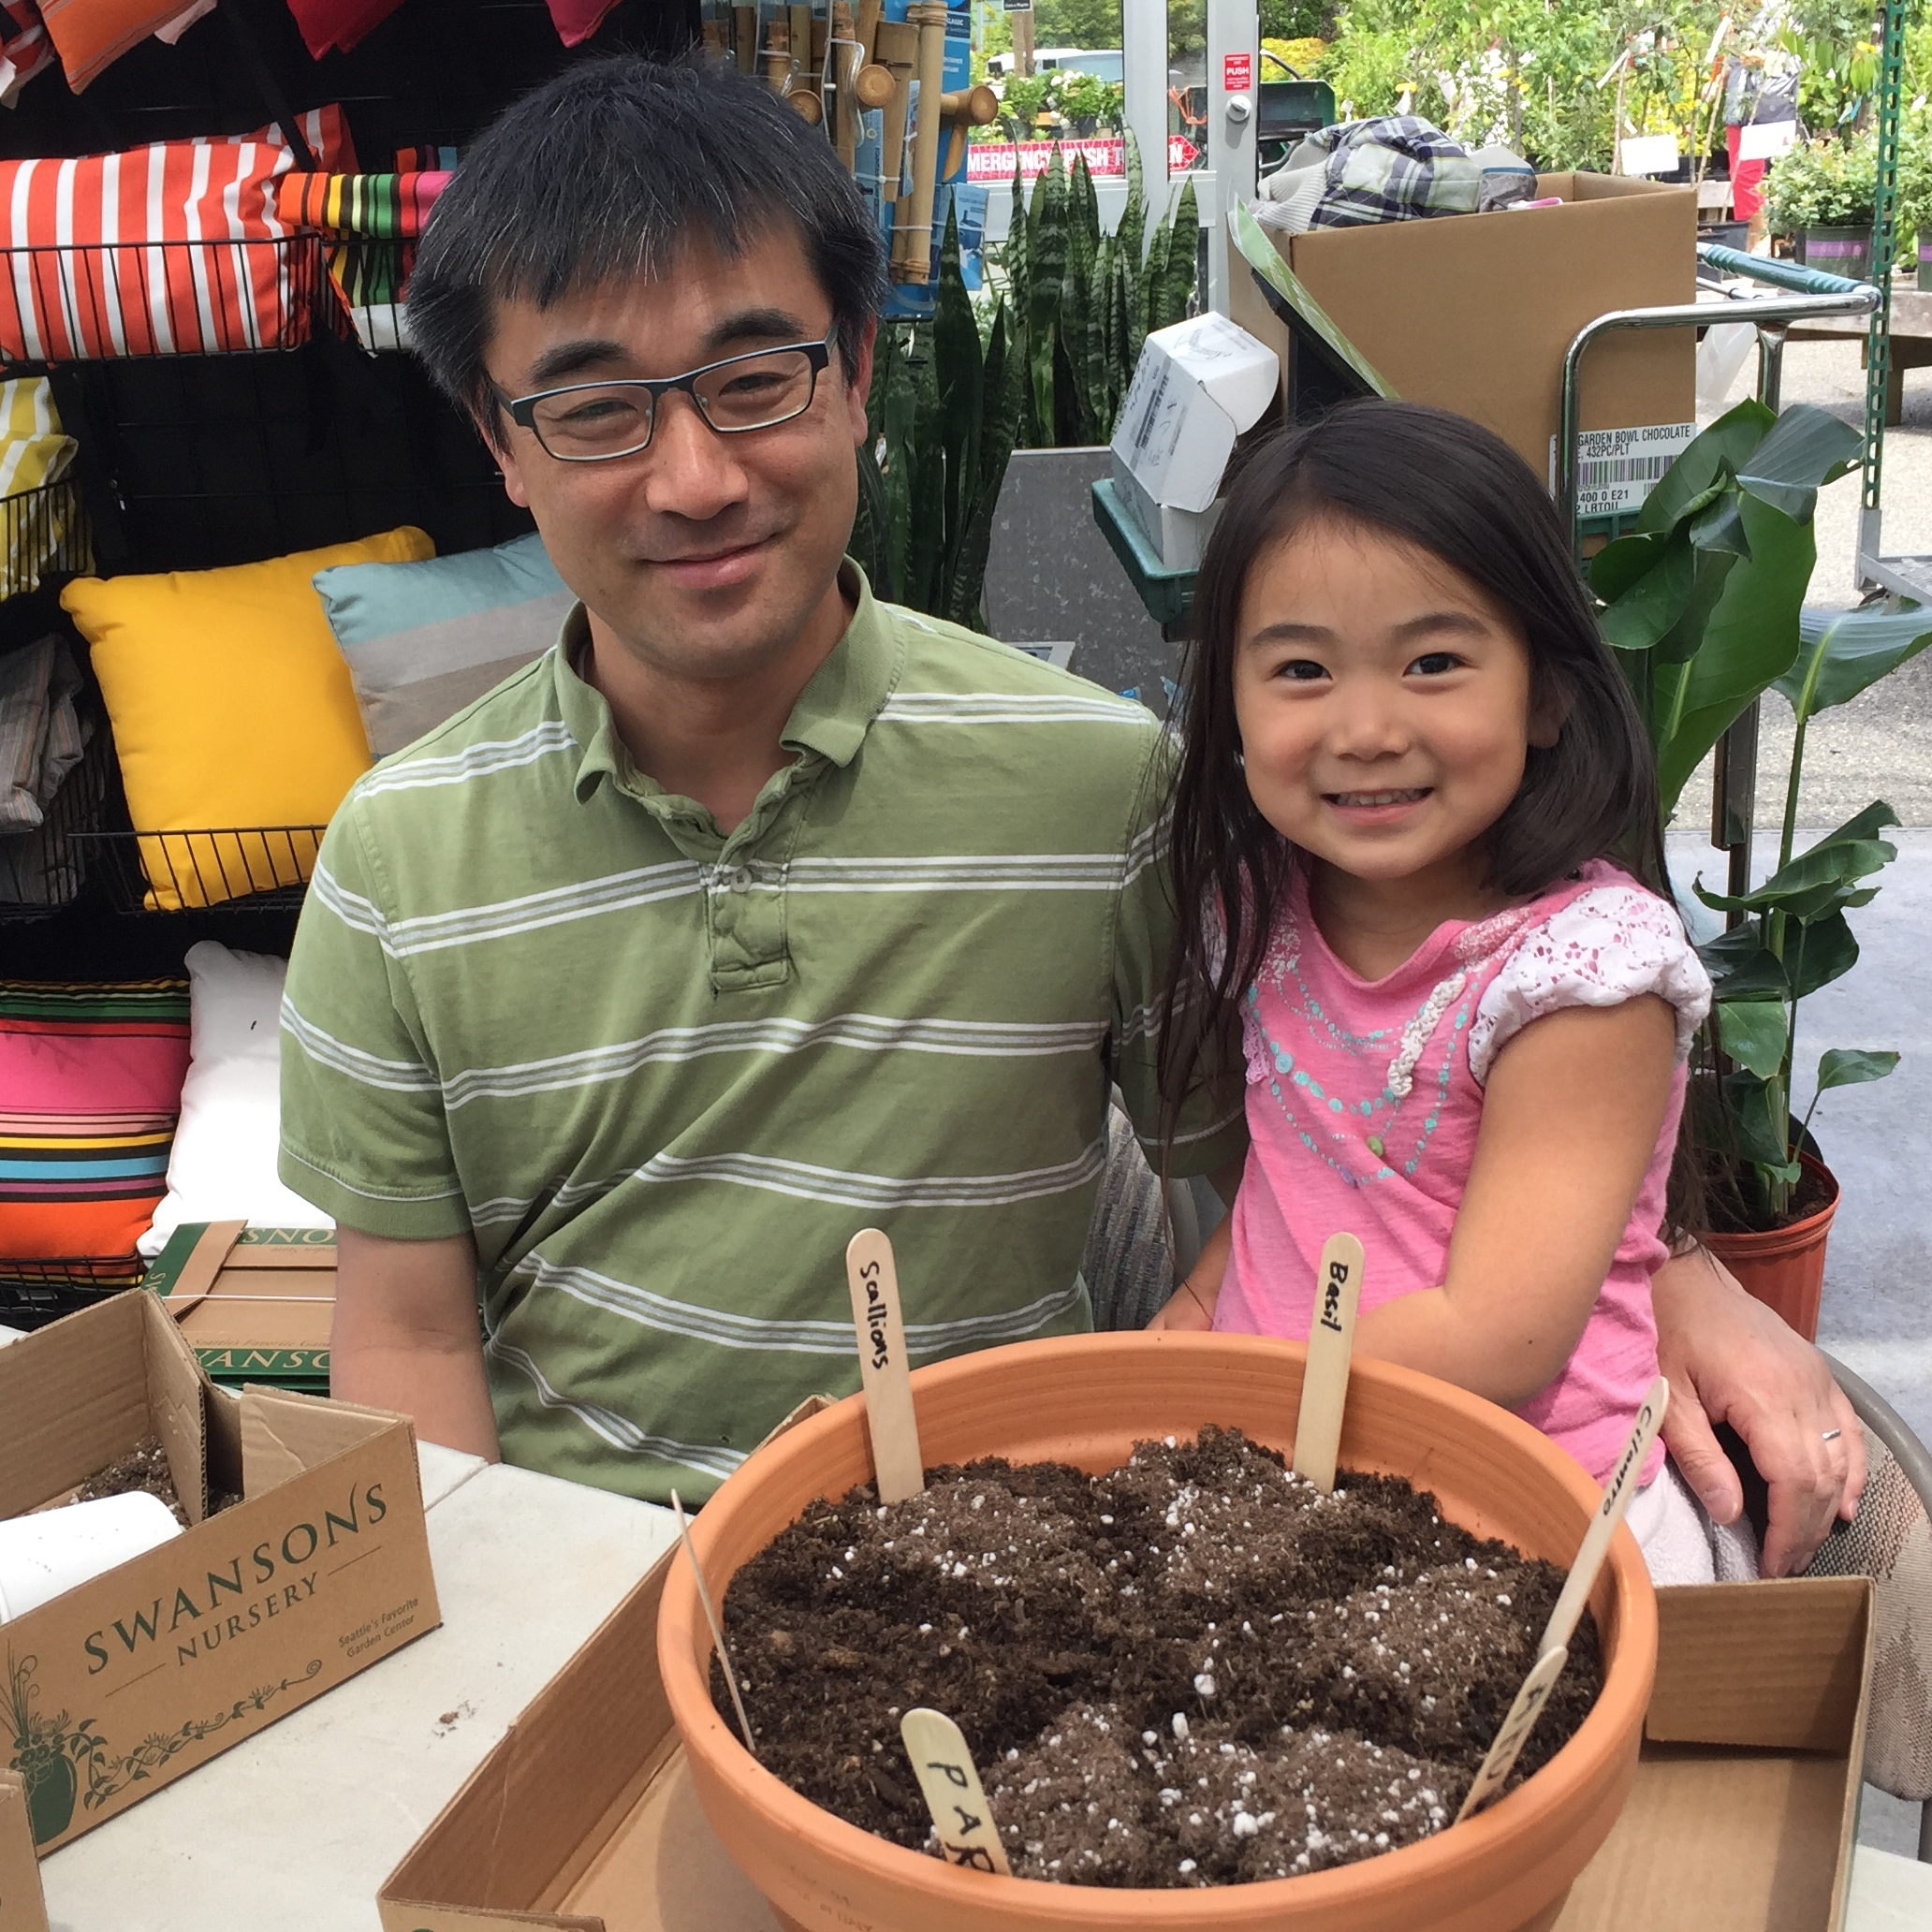 Plant a pizza herb garden with dad for Father's Day